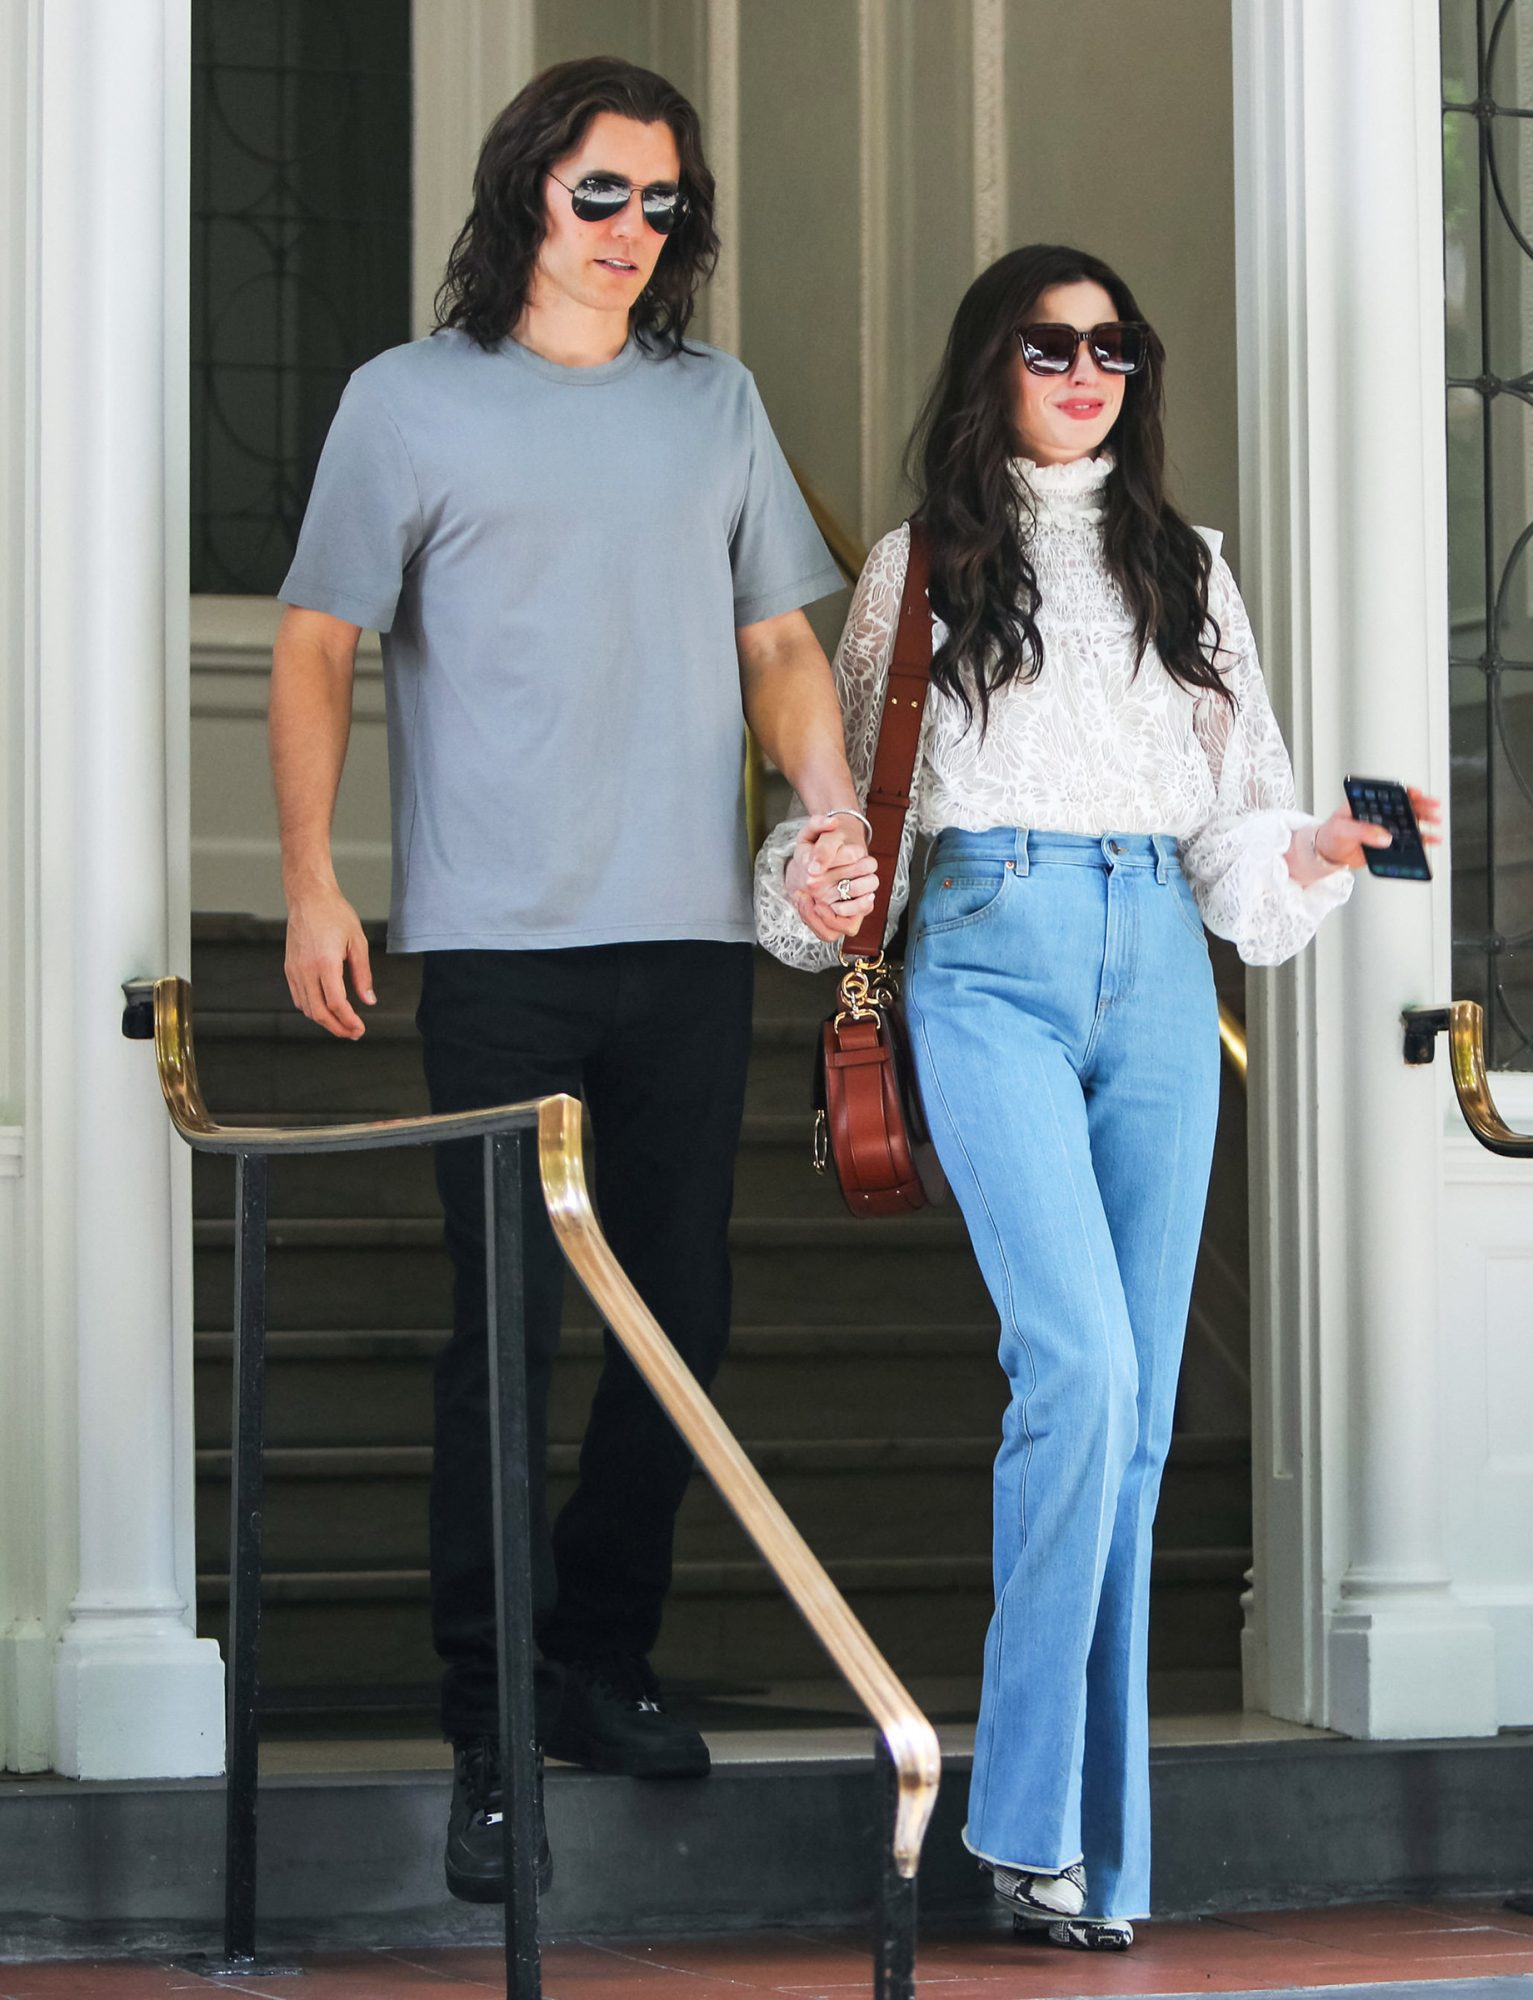 Anne Hathaway and Jared Leto are seen at the film set of the 'WeCrashed' TV Series on June 08, 2021 in New York City